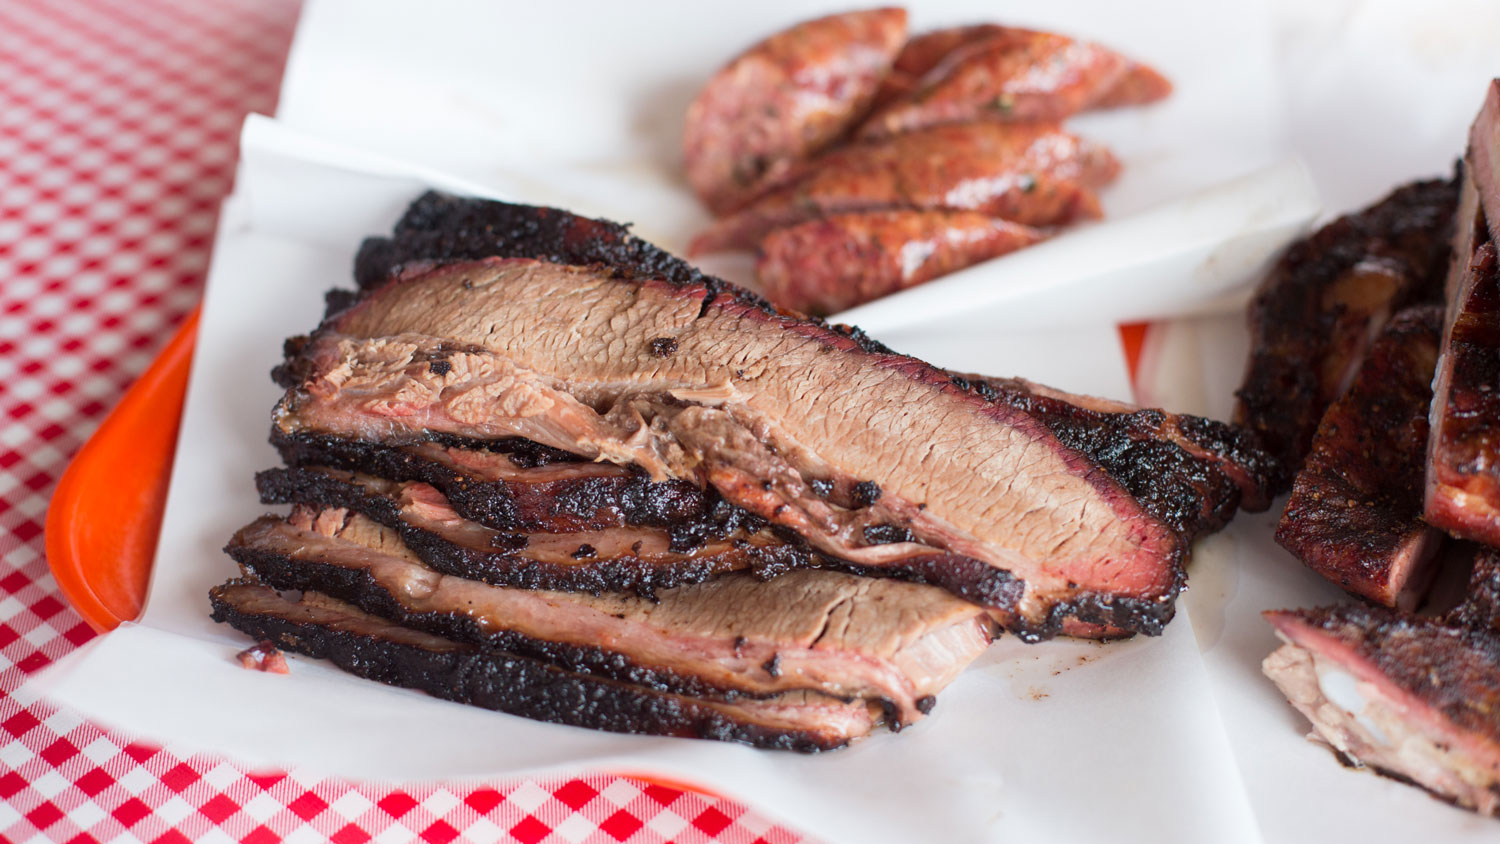 Sliced brisket and sausage from Old 300 BBQ